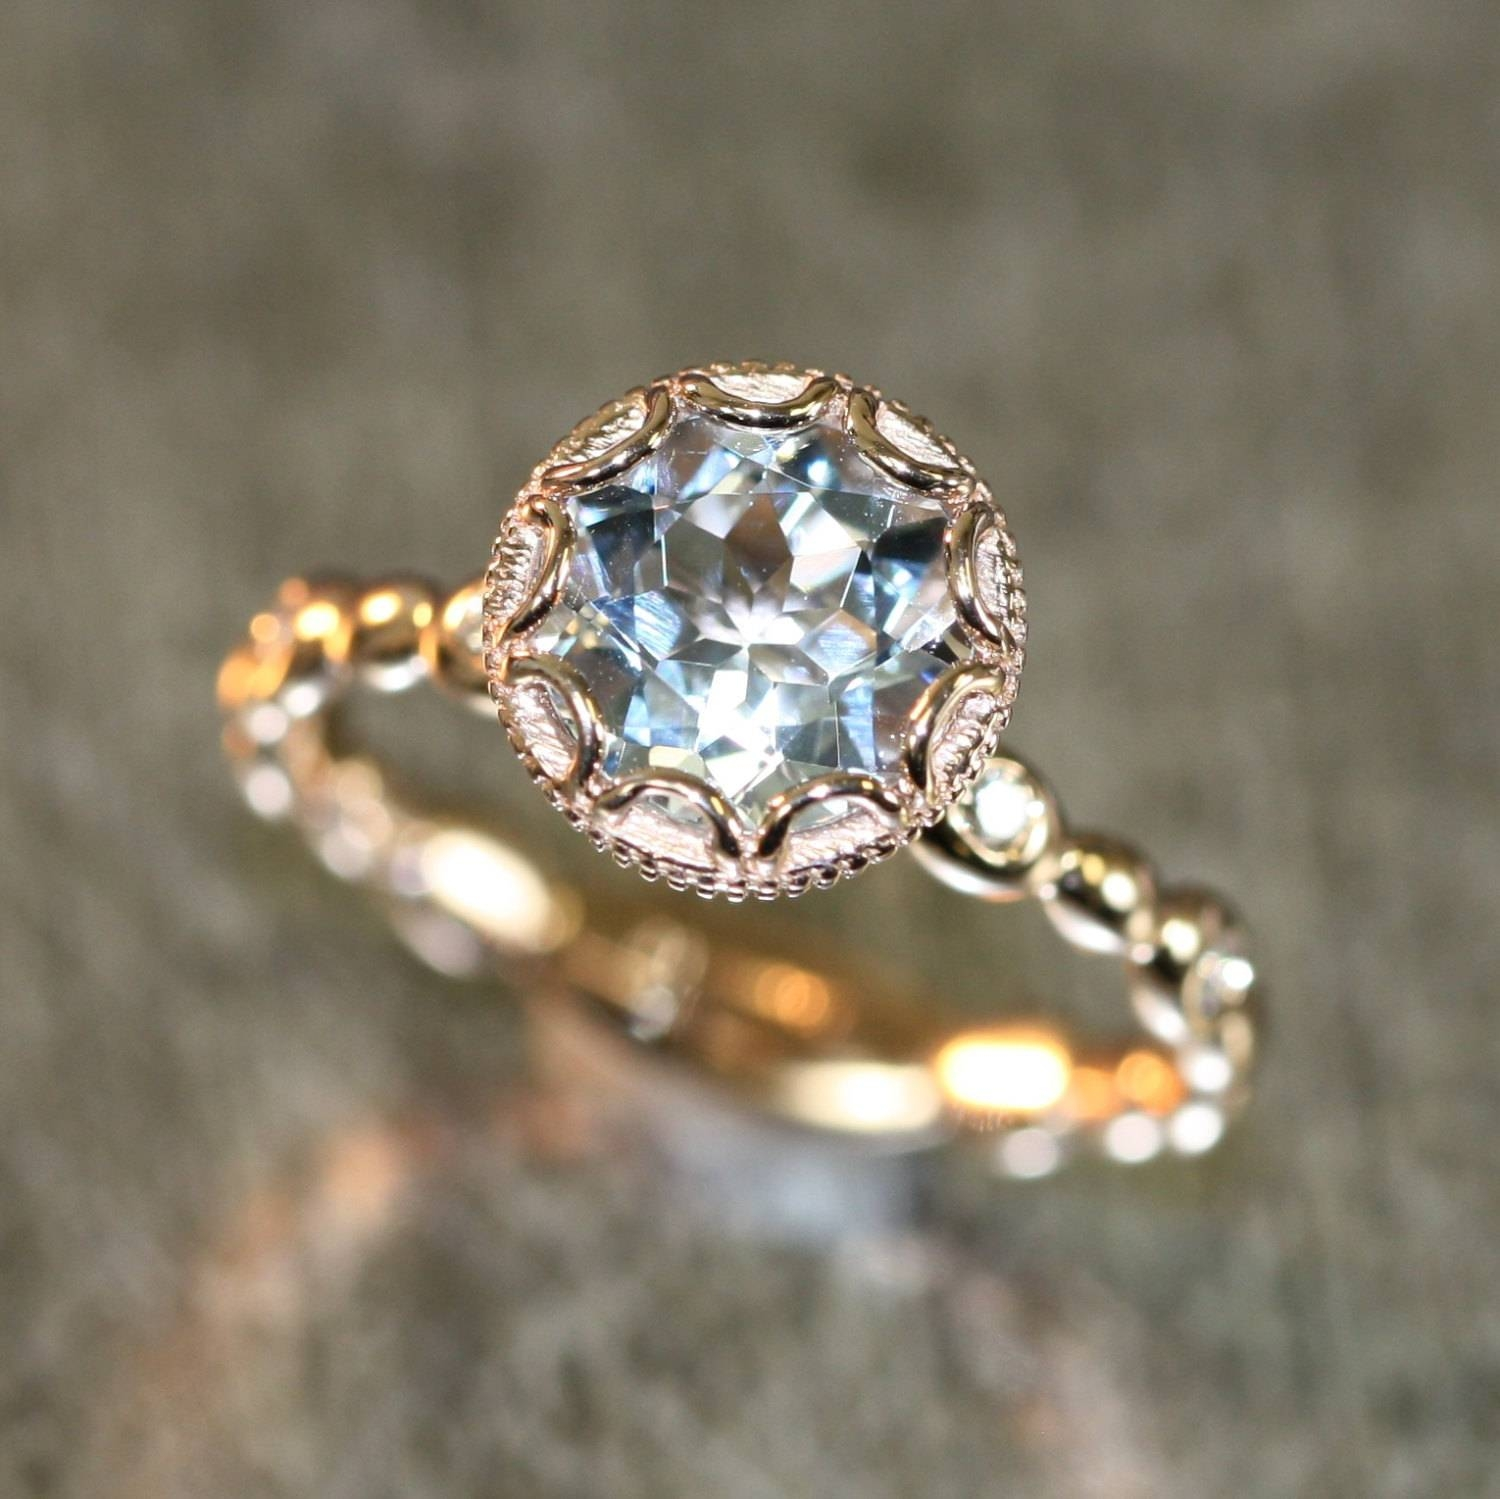 14k Rose Gold Floral Aquamarine Engagement Ring In Pebble Pertaining To Vintage Engagement Rings Northern Ireland (View 10 of 15)